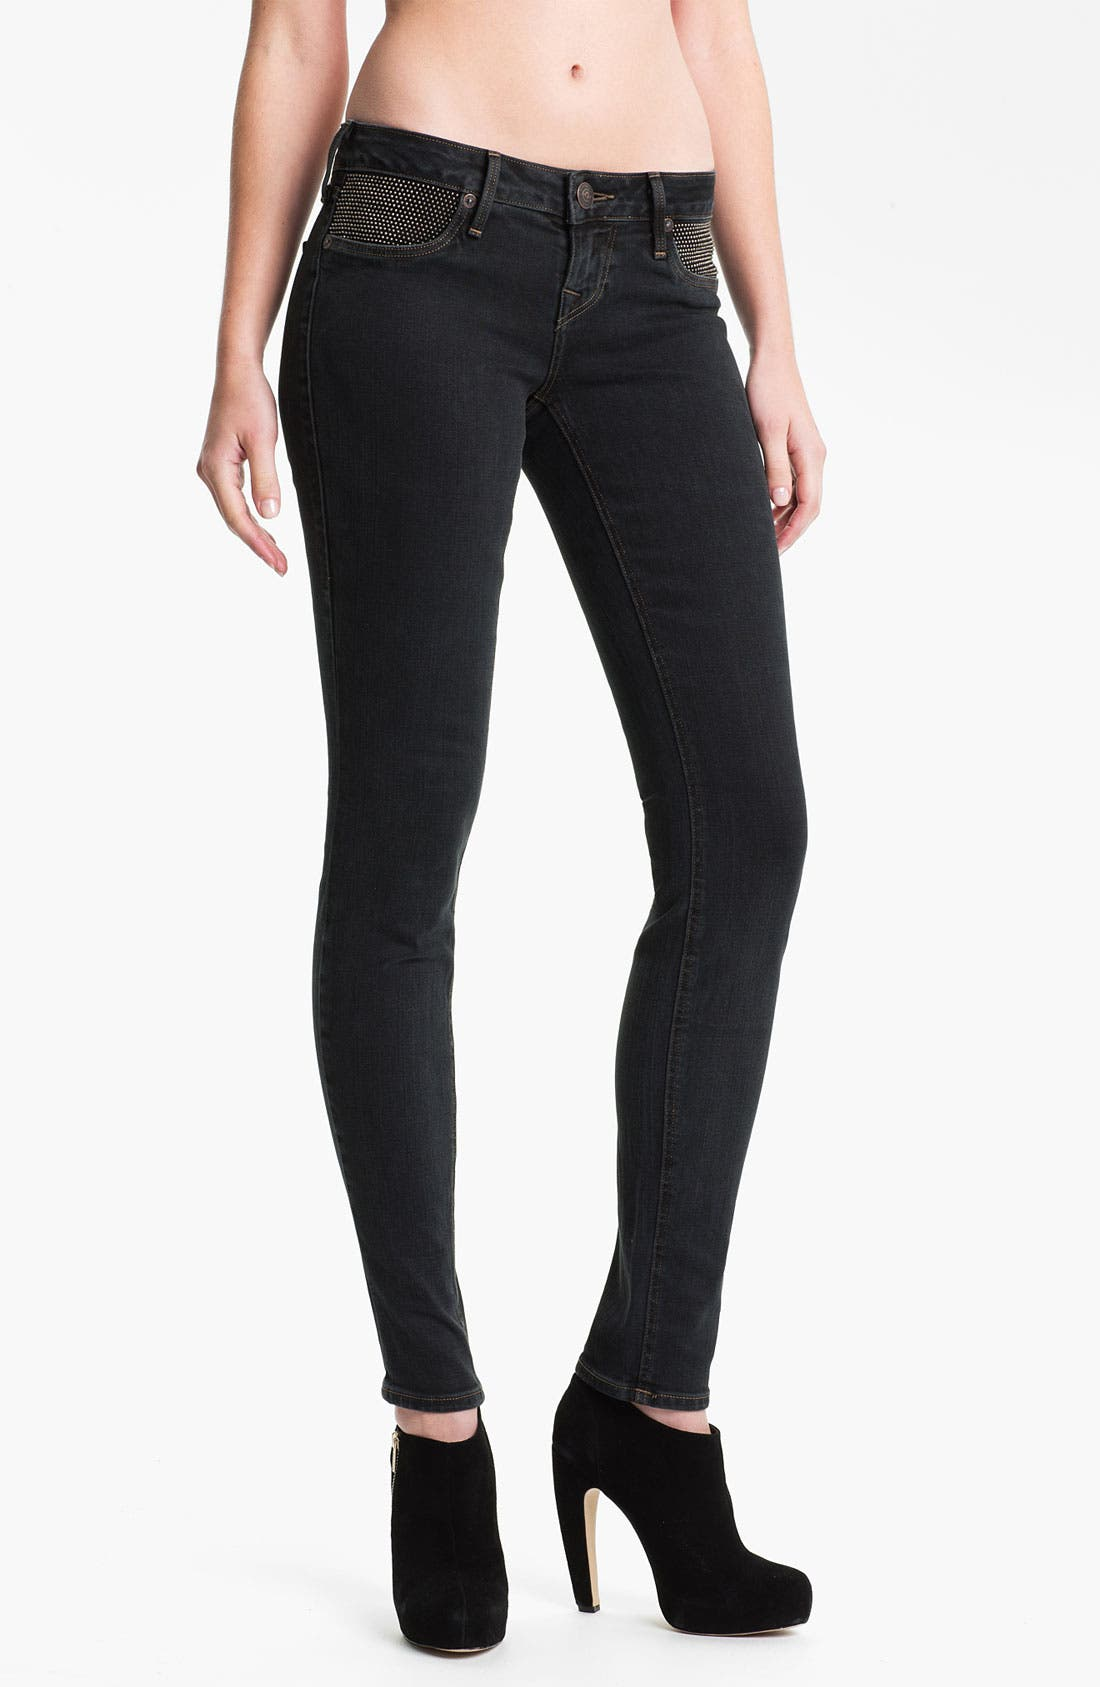 Main Image - True Religion Brand Jeans 'Shannon' Studded Pocket Skinny Jeans (Black Stone)